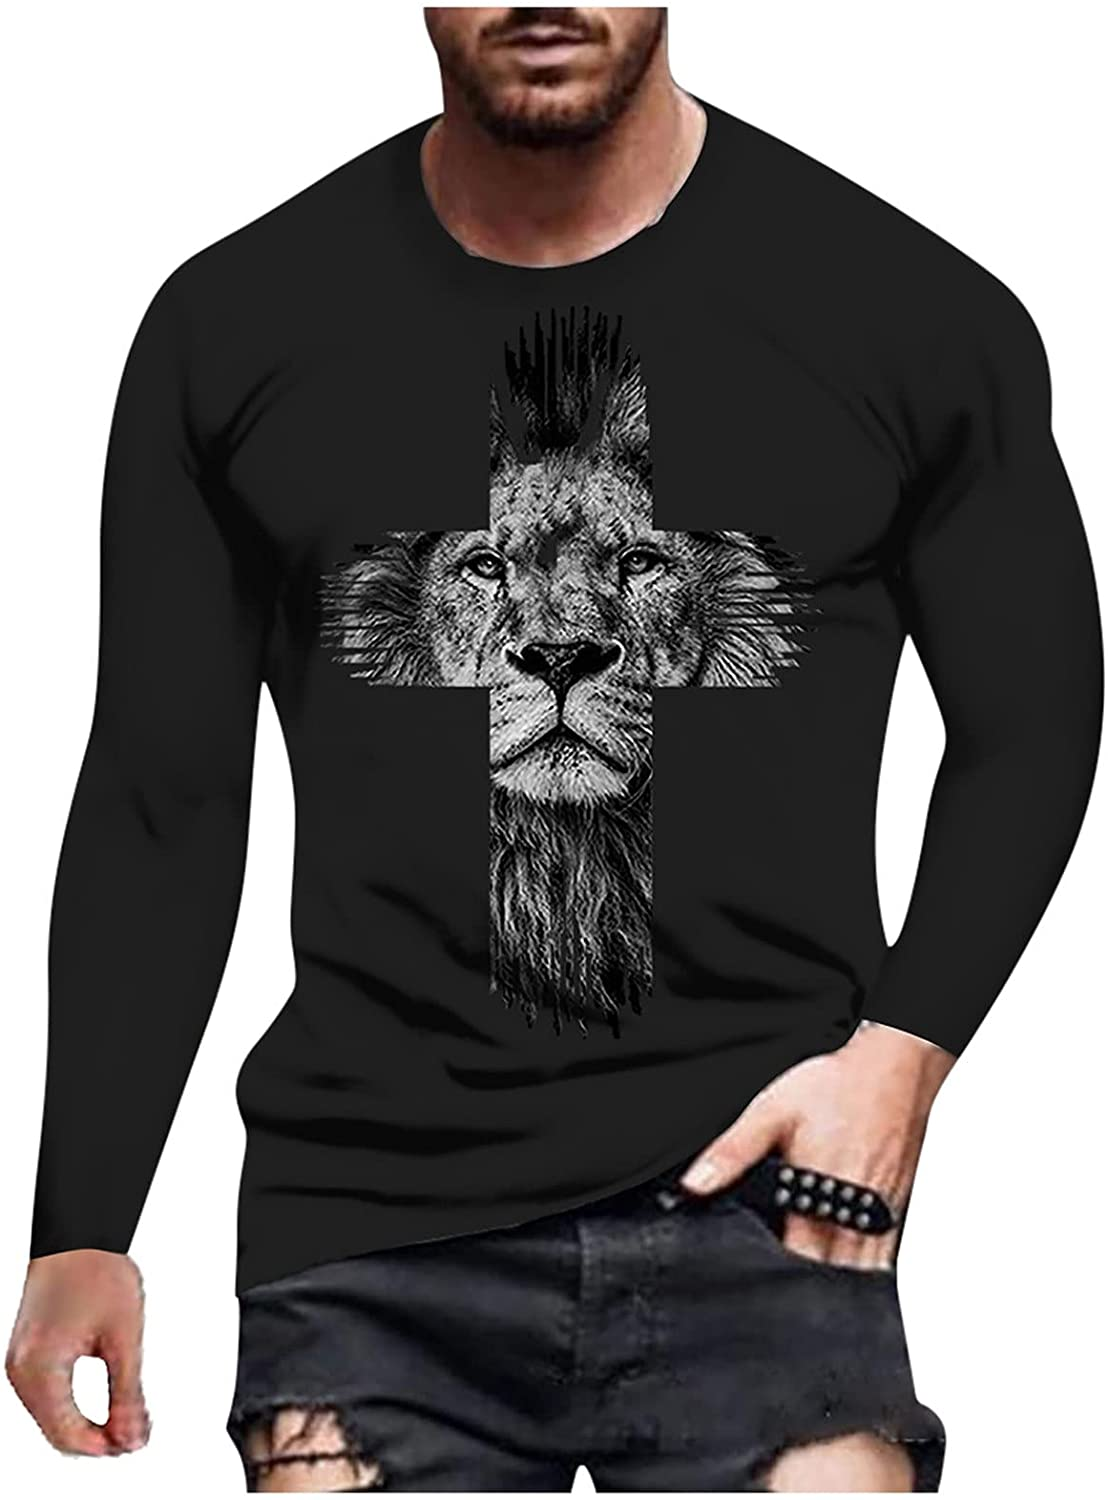 WoCoo Mens Long Sleeve T-Shirt Jesus Cross Printed Round Neck Tops Casual Vintage Pullover Blouse Workout Quick-Dry Top